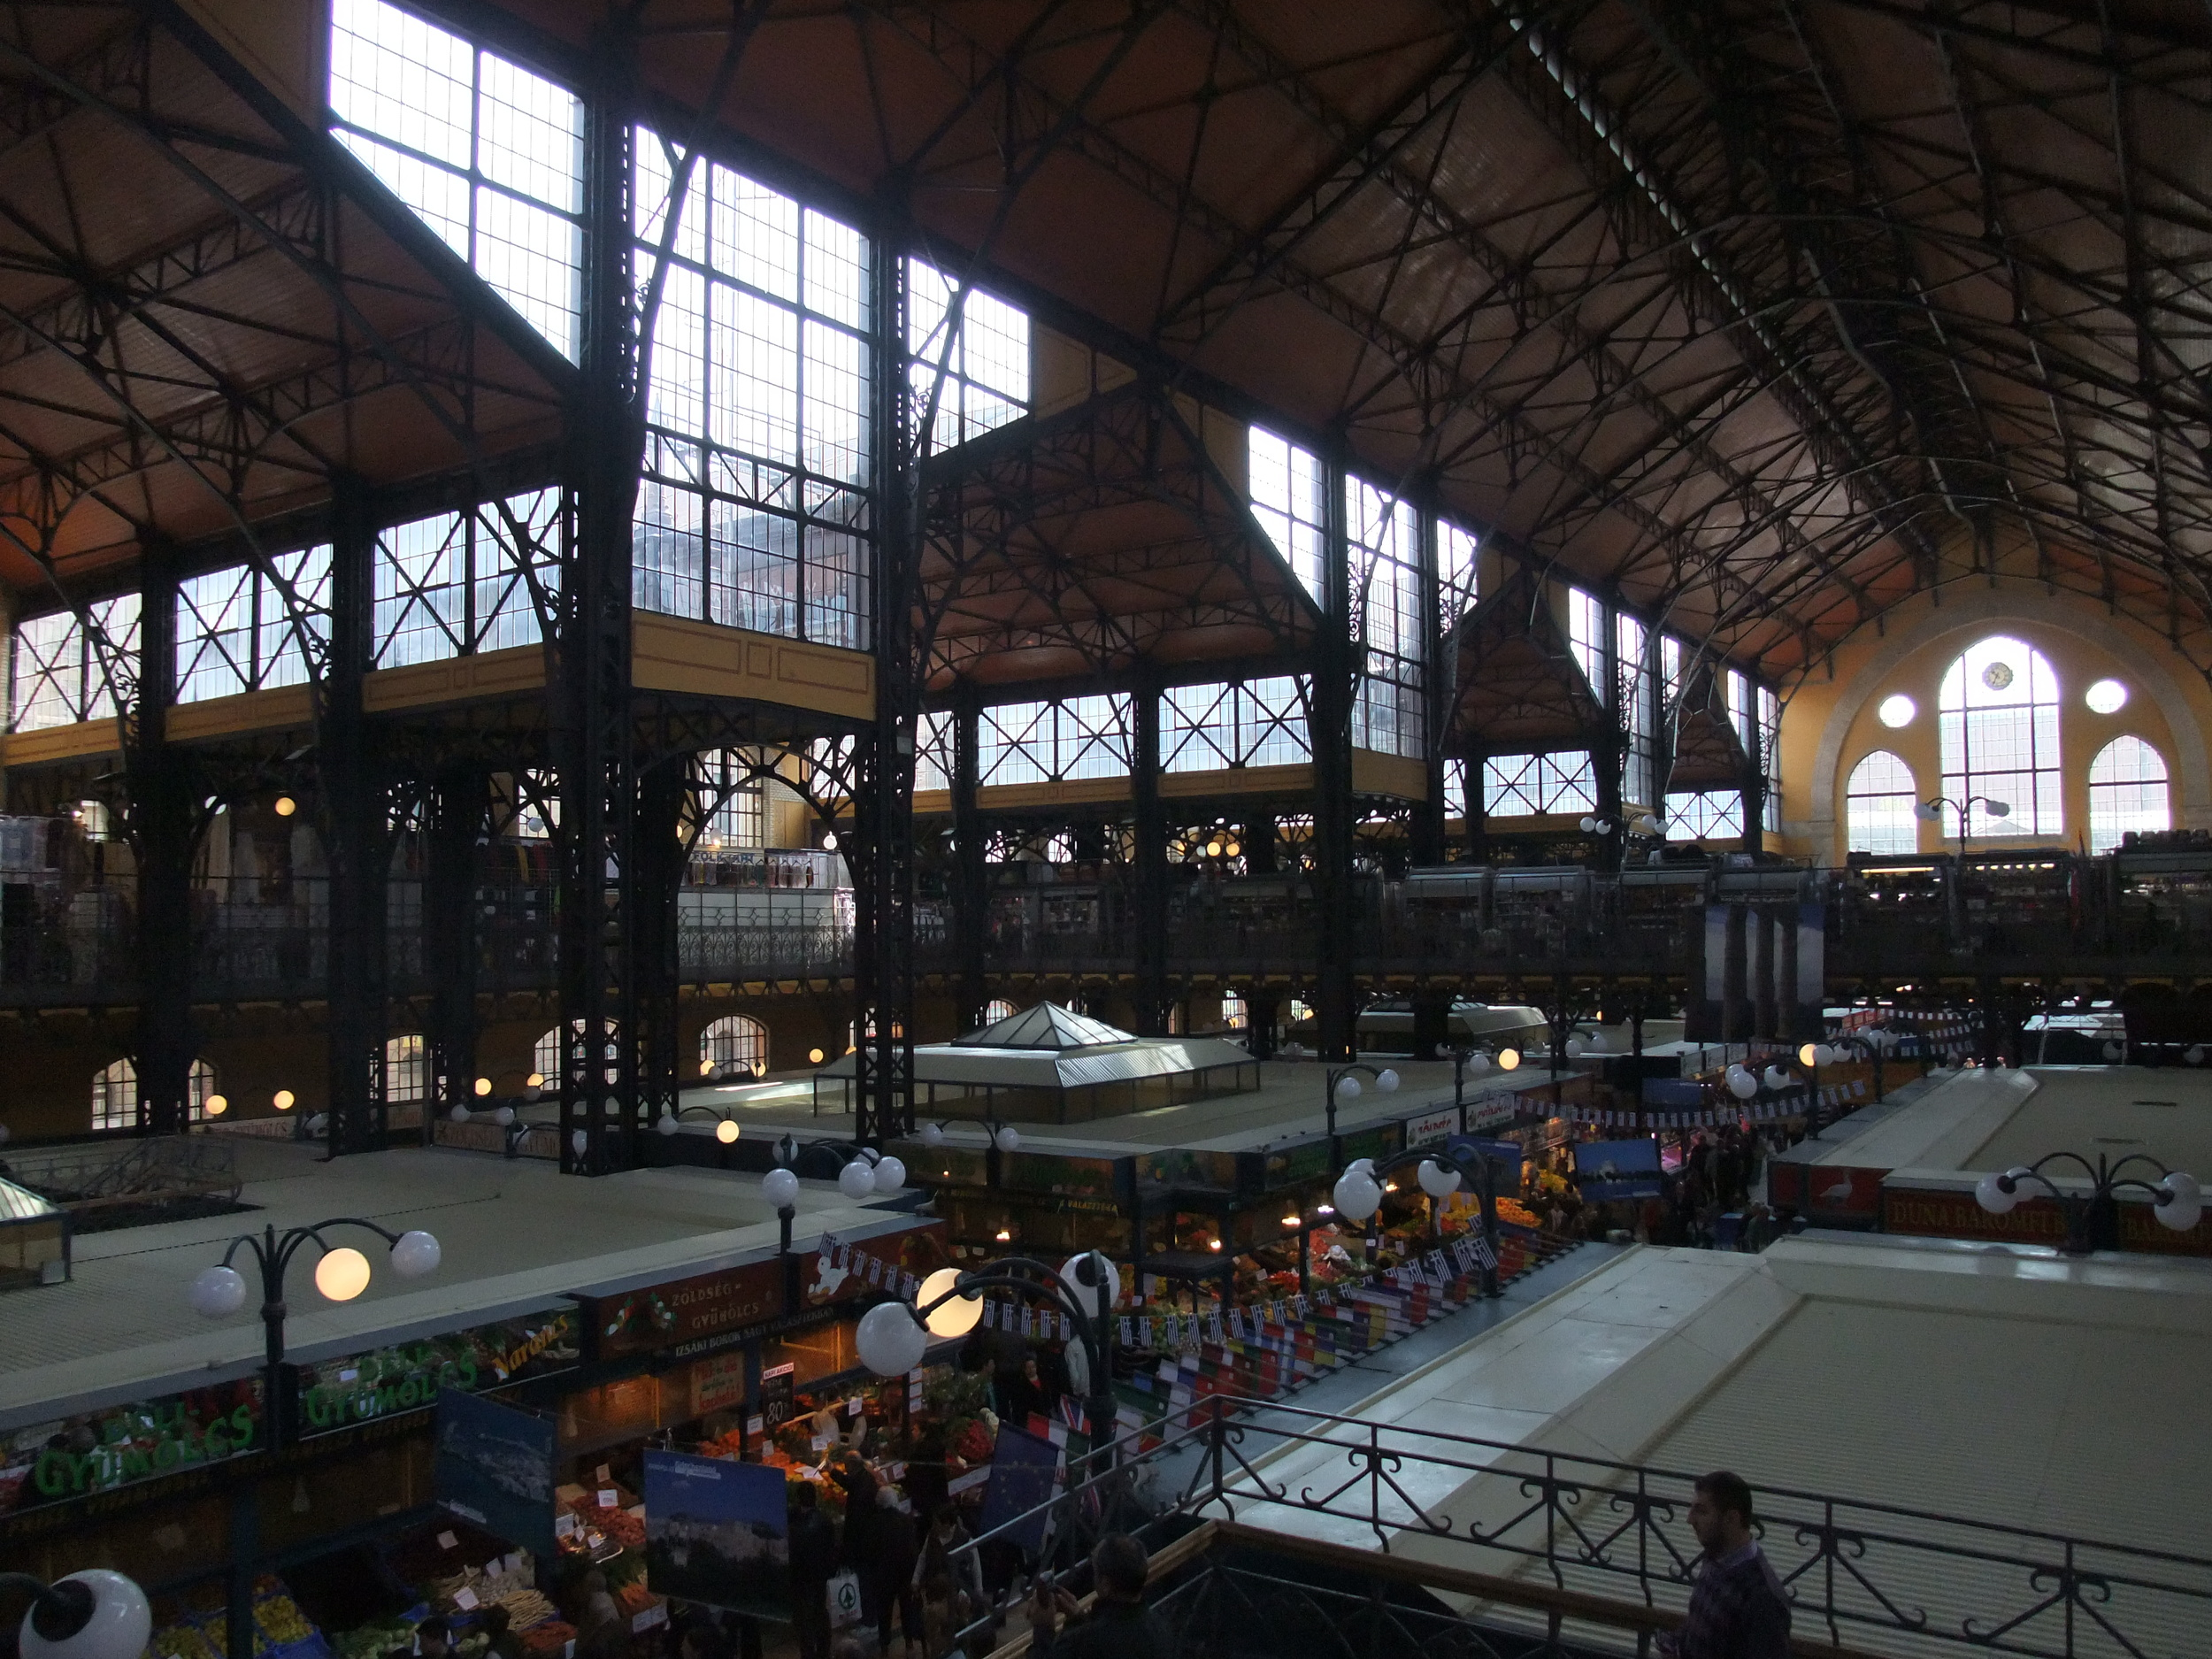 Inside the Great Market Hall